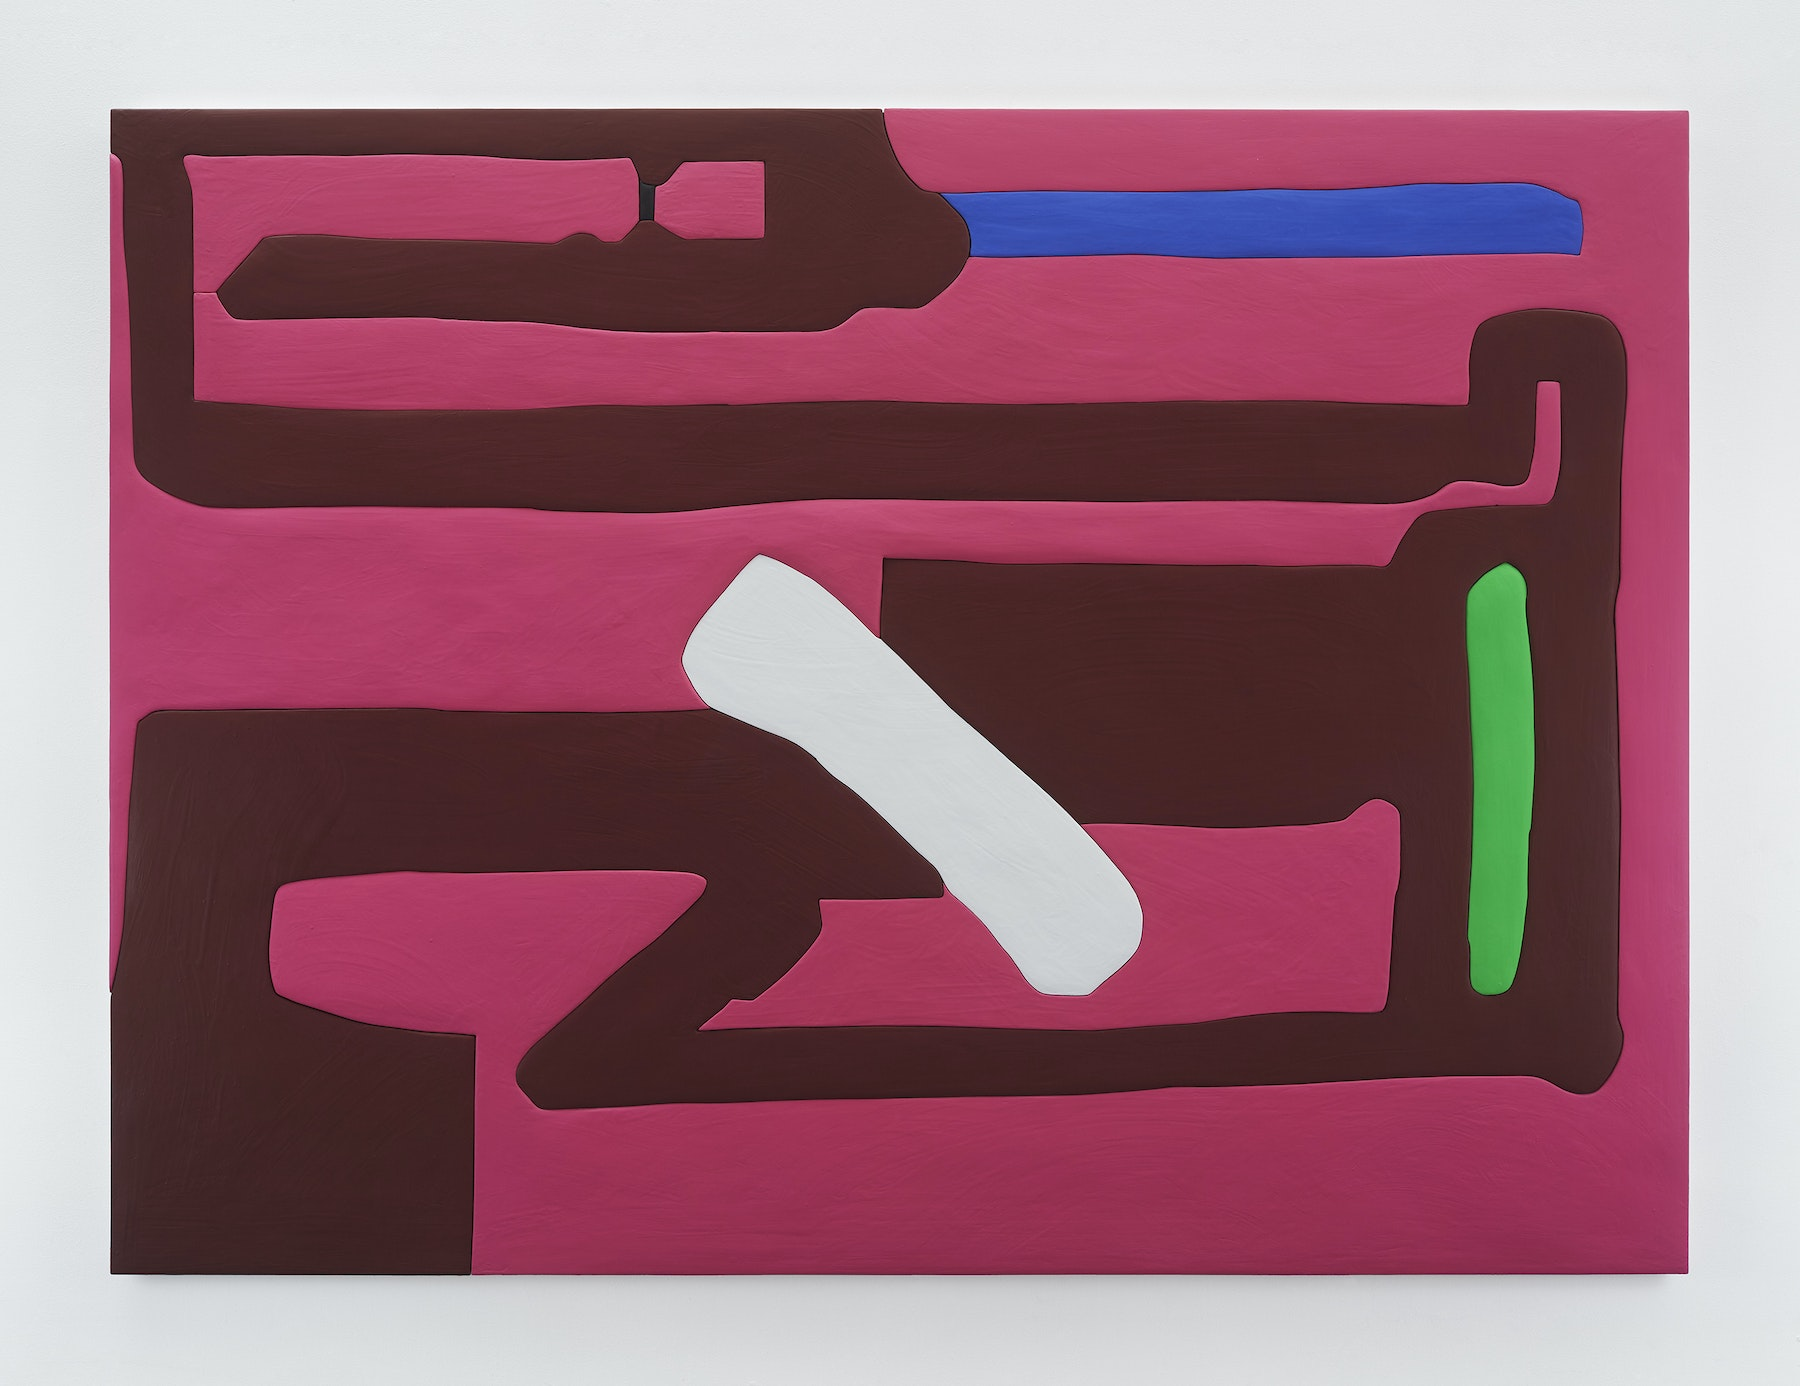 """Sadie Benning """"Untitled 4,"""" 2019 Wood, aqua resin, casein, and acrylic gouache 59 x 80"""" [HxW] (149.86 x 203.2 cm) Inventory #BEN858 Courtesy of the artist and Vielmetter Los Angeles Photocredit: Chris Austin"""